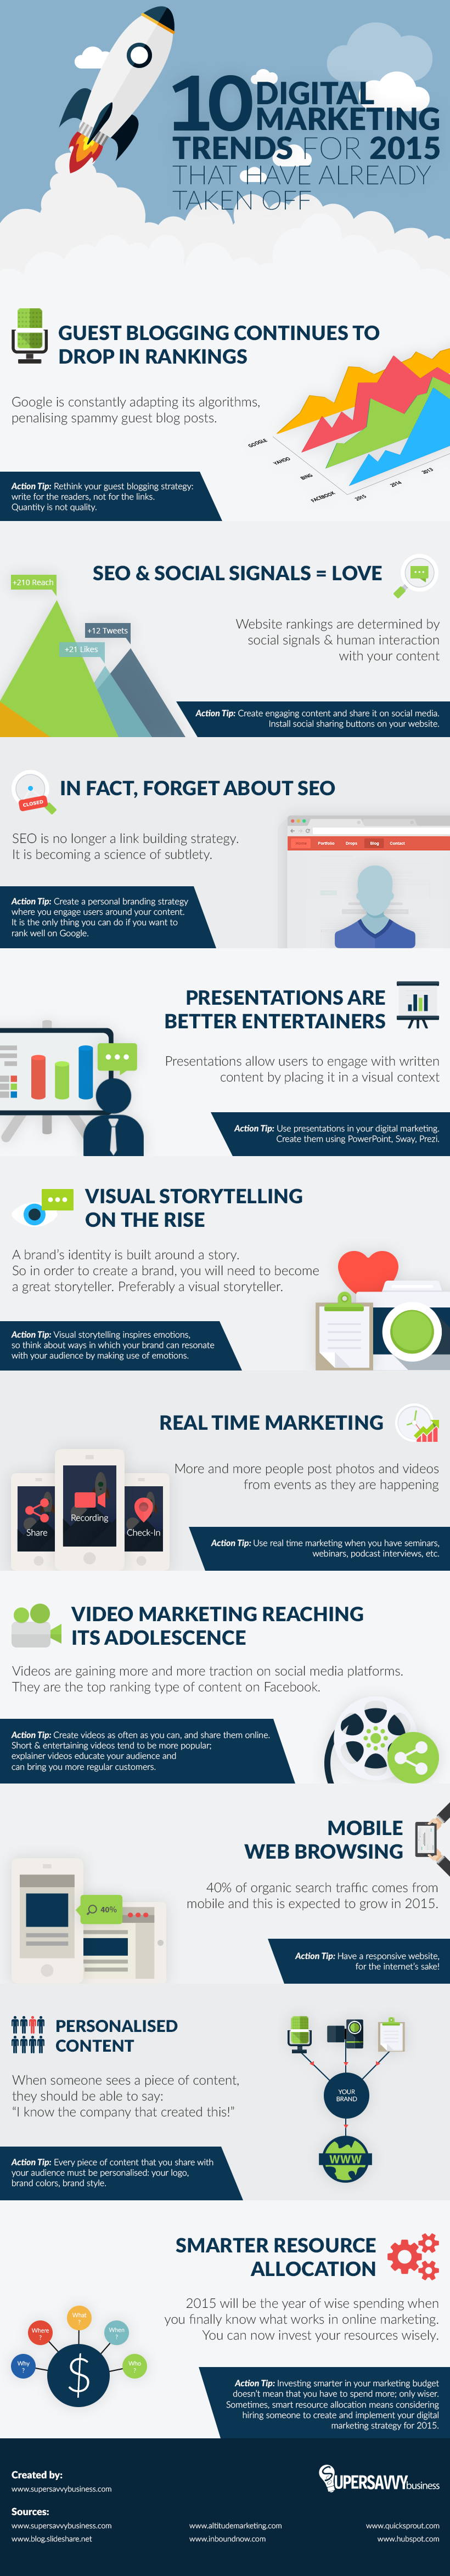 digital-marketing-trends-of-2015